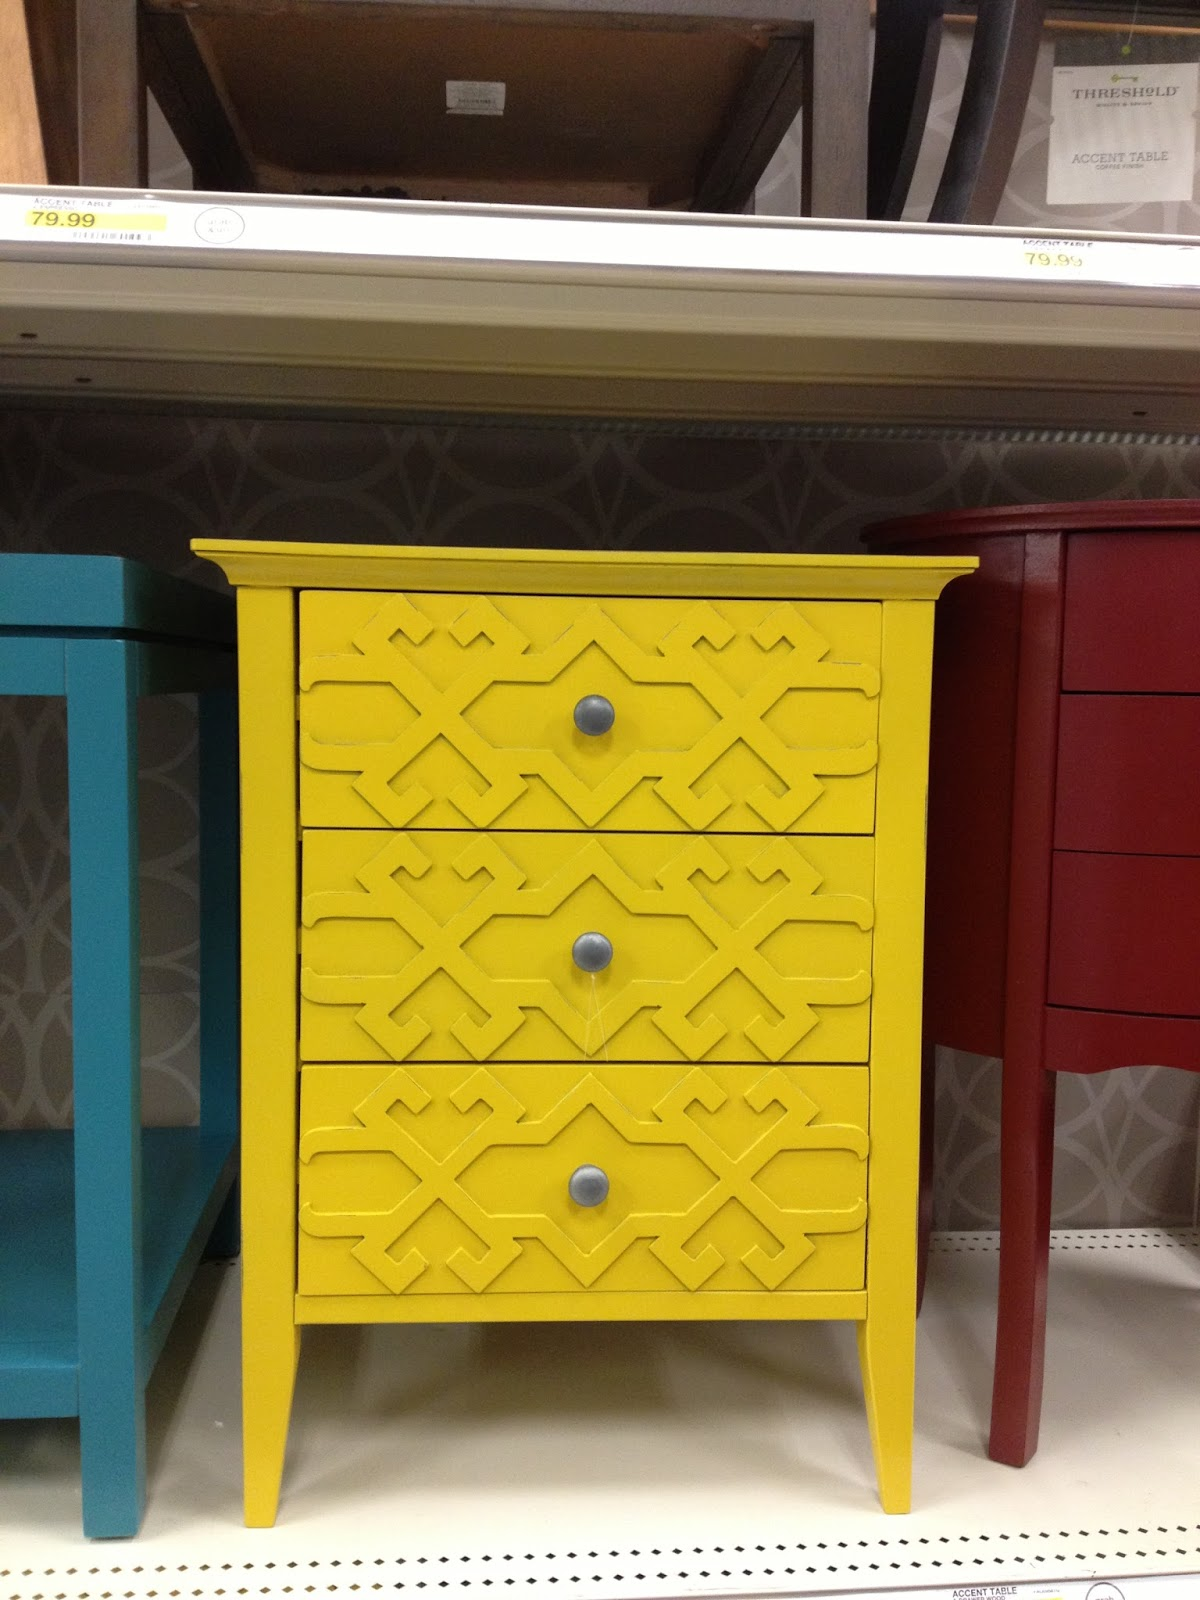 splendid yellow accent table target goedkoop html tabletop contents theories wordpress nederlands powder mdn standaard baking kopen teaspoons hours aanbieding dream tablespoons